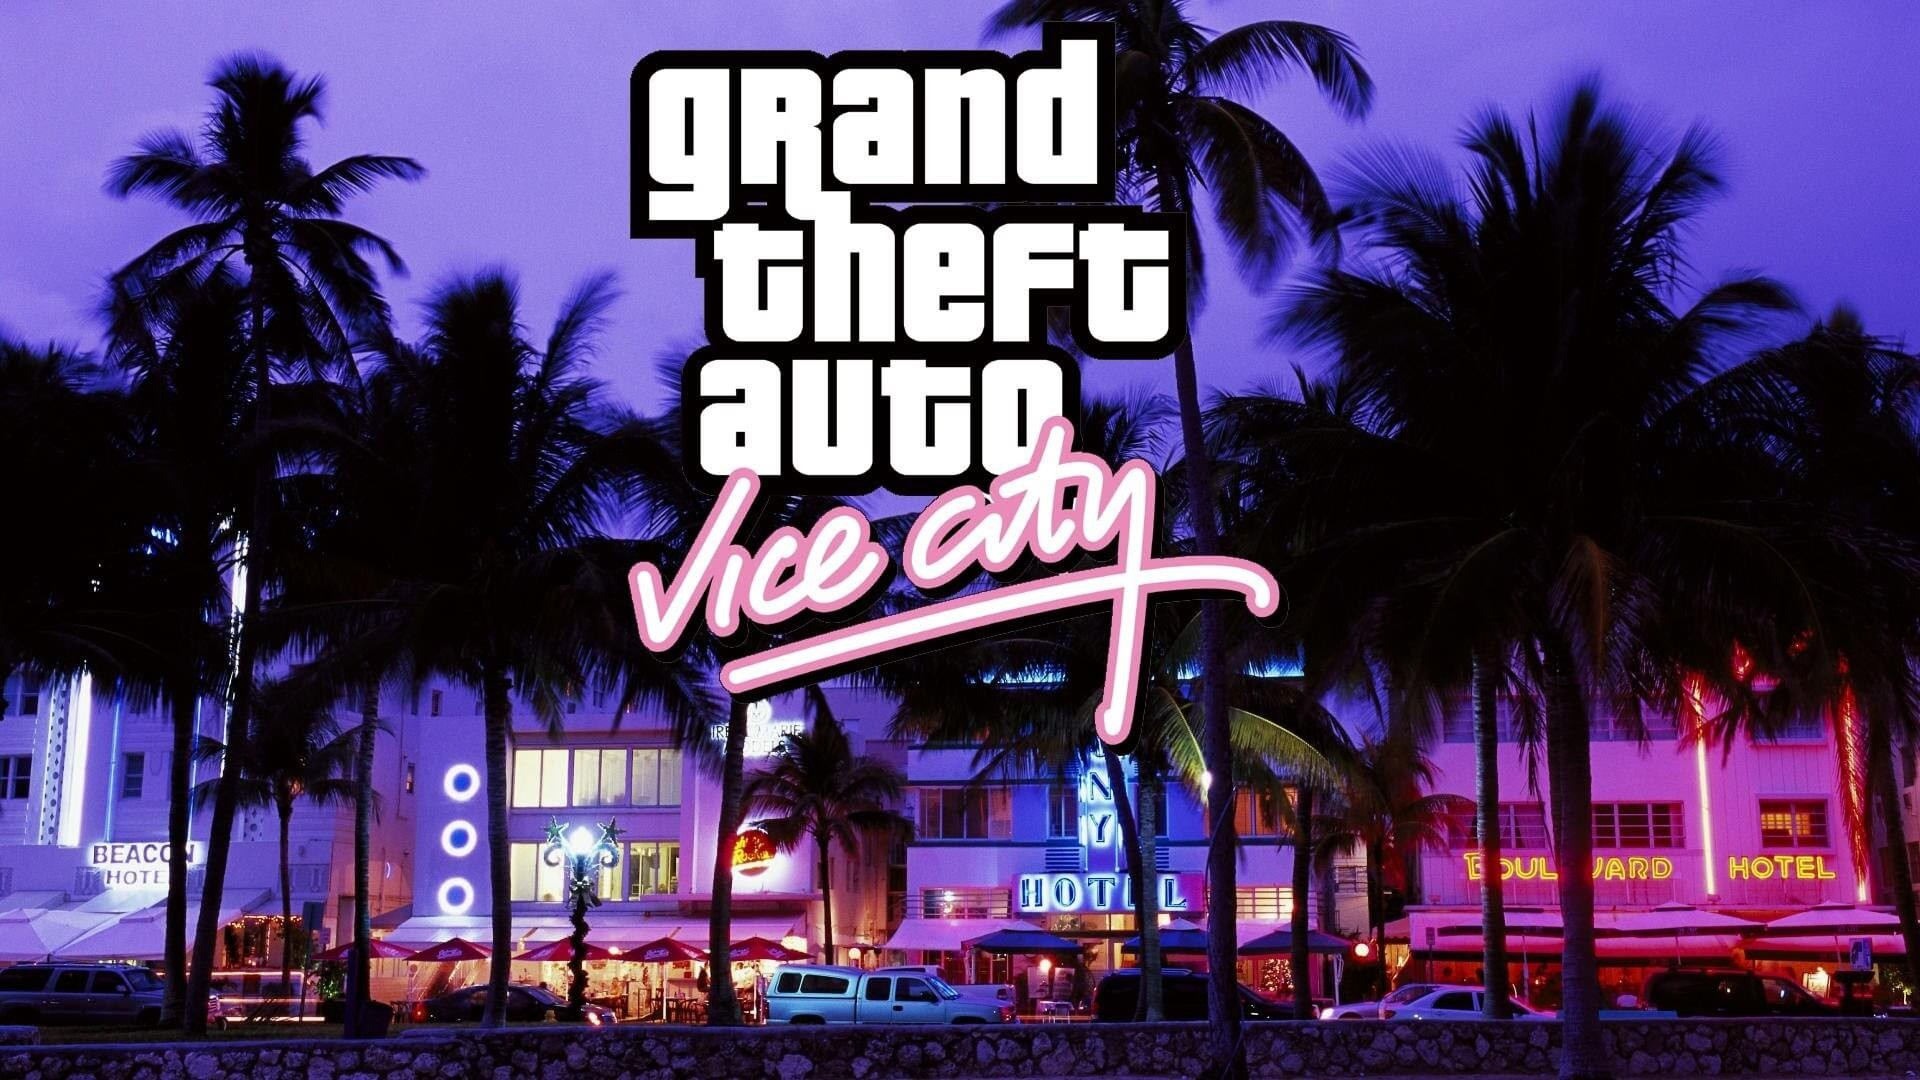 Free Download Grand Theft Auto Vice City Hd Wallpapers And